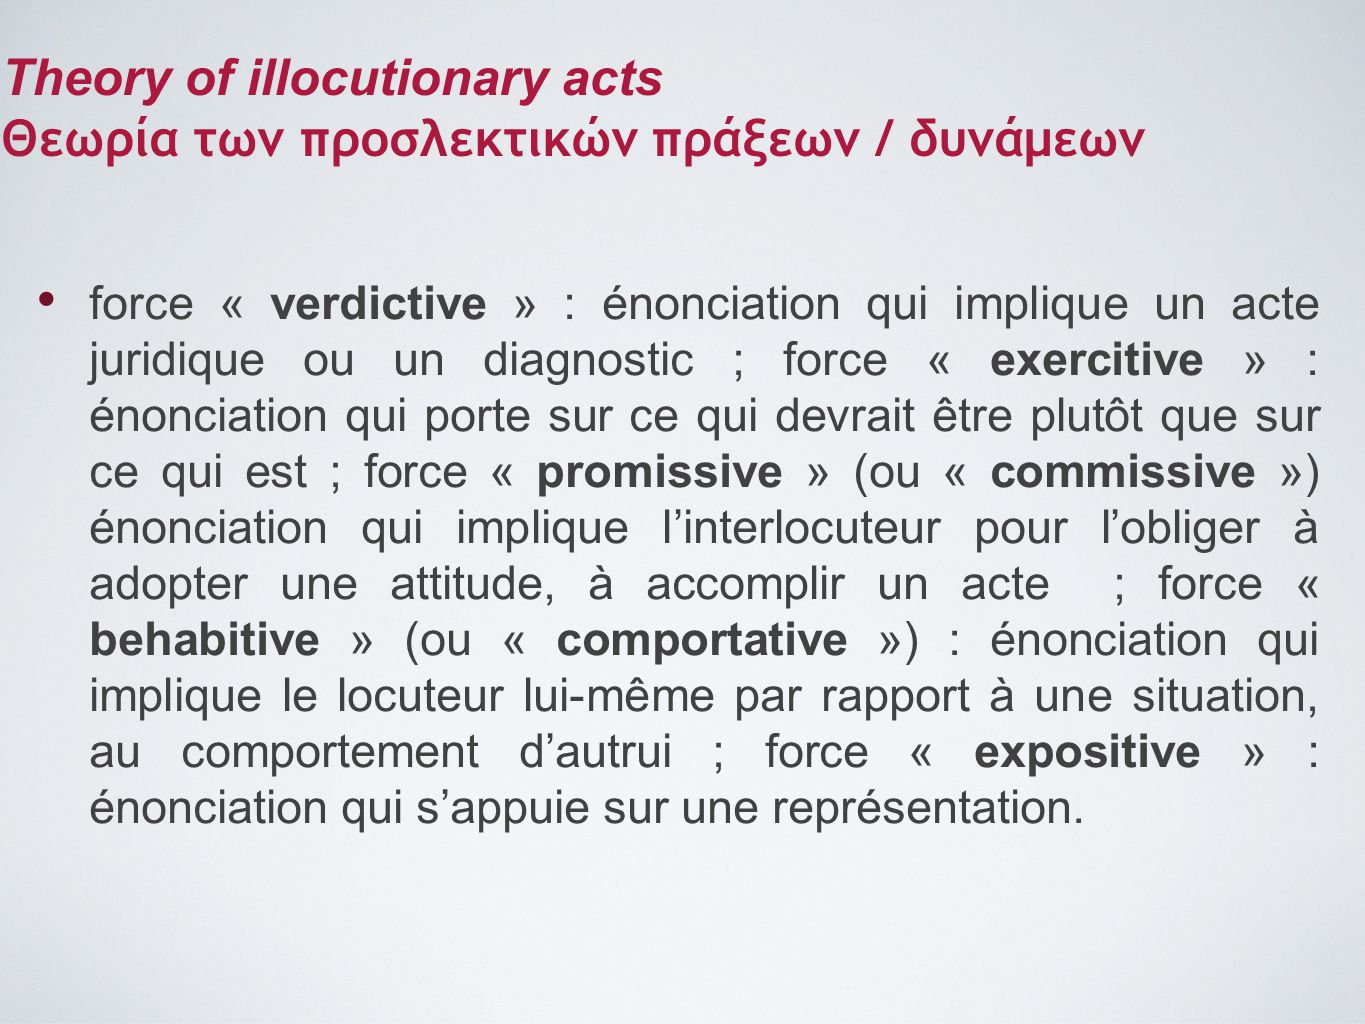 force « verdictive » : énonciation qui implique un acte juridique ou un diagnostic ; force « exercitive » : énonciation qui porte sur ce qui devrait ê